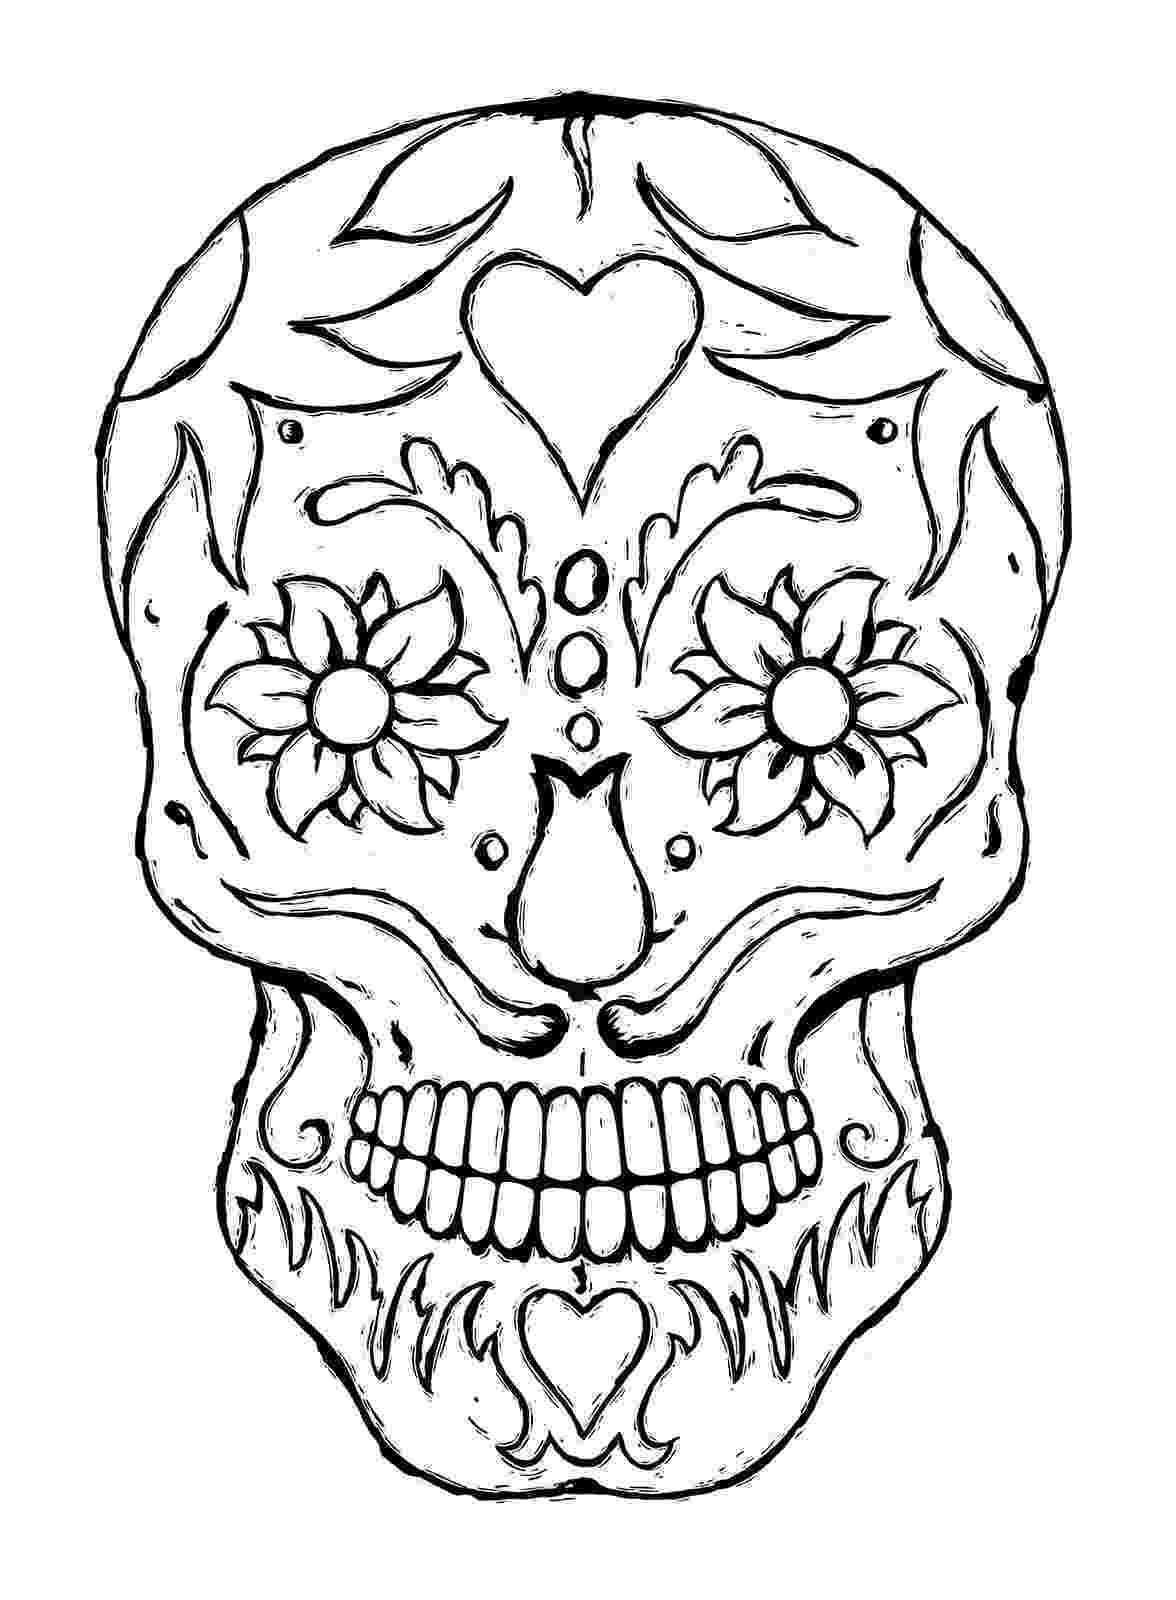 coloring sheets for kids free printable goofy coloring pages for kids kids coloring for sheets